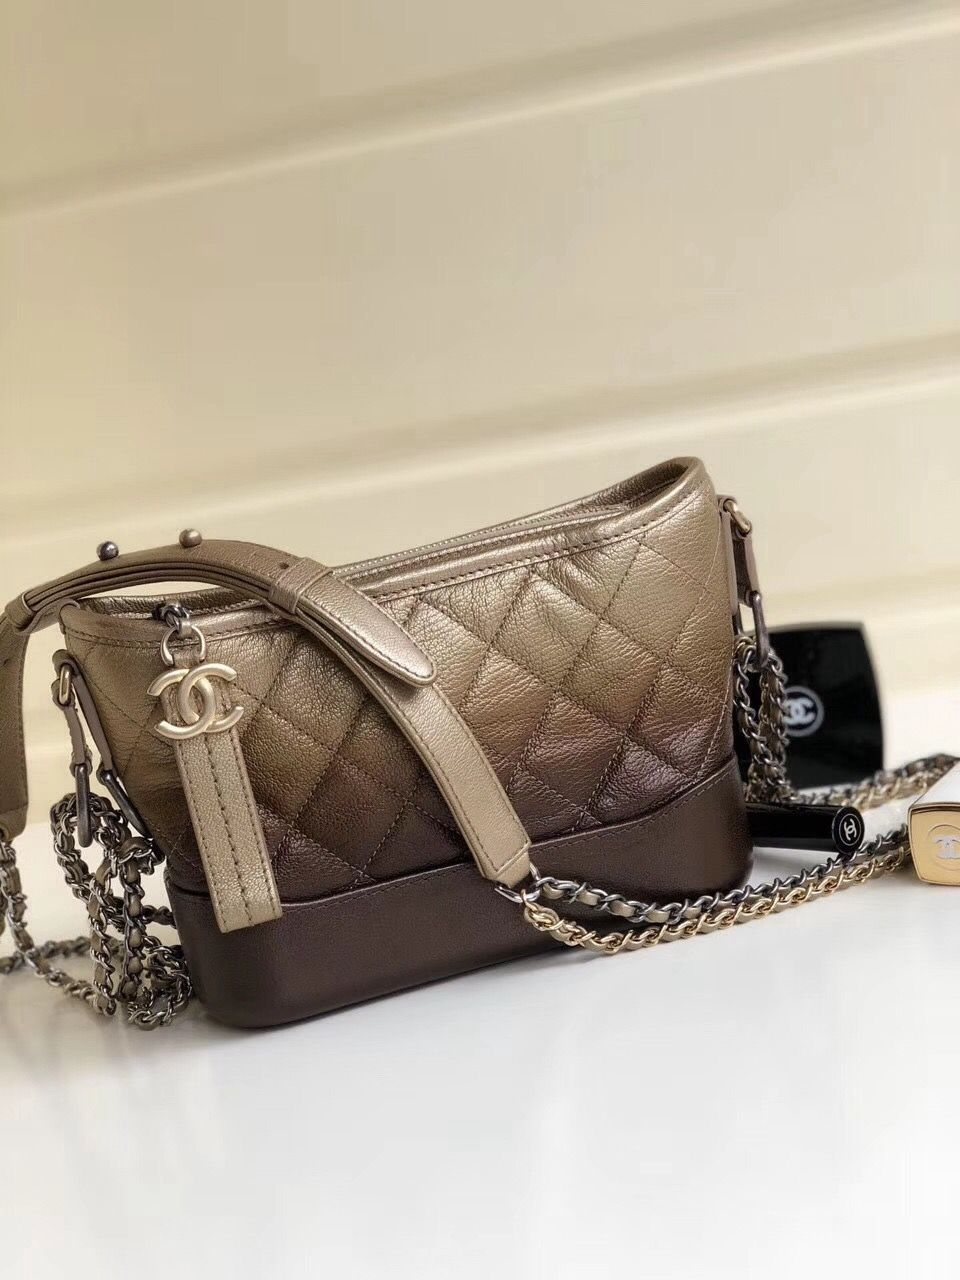 0be675ddfd89 Chanel Two-tone Grained Calfskin Gabrielle Small Hobo Bag A91810 Gold/Black  2018